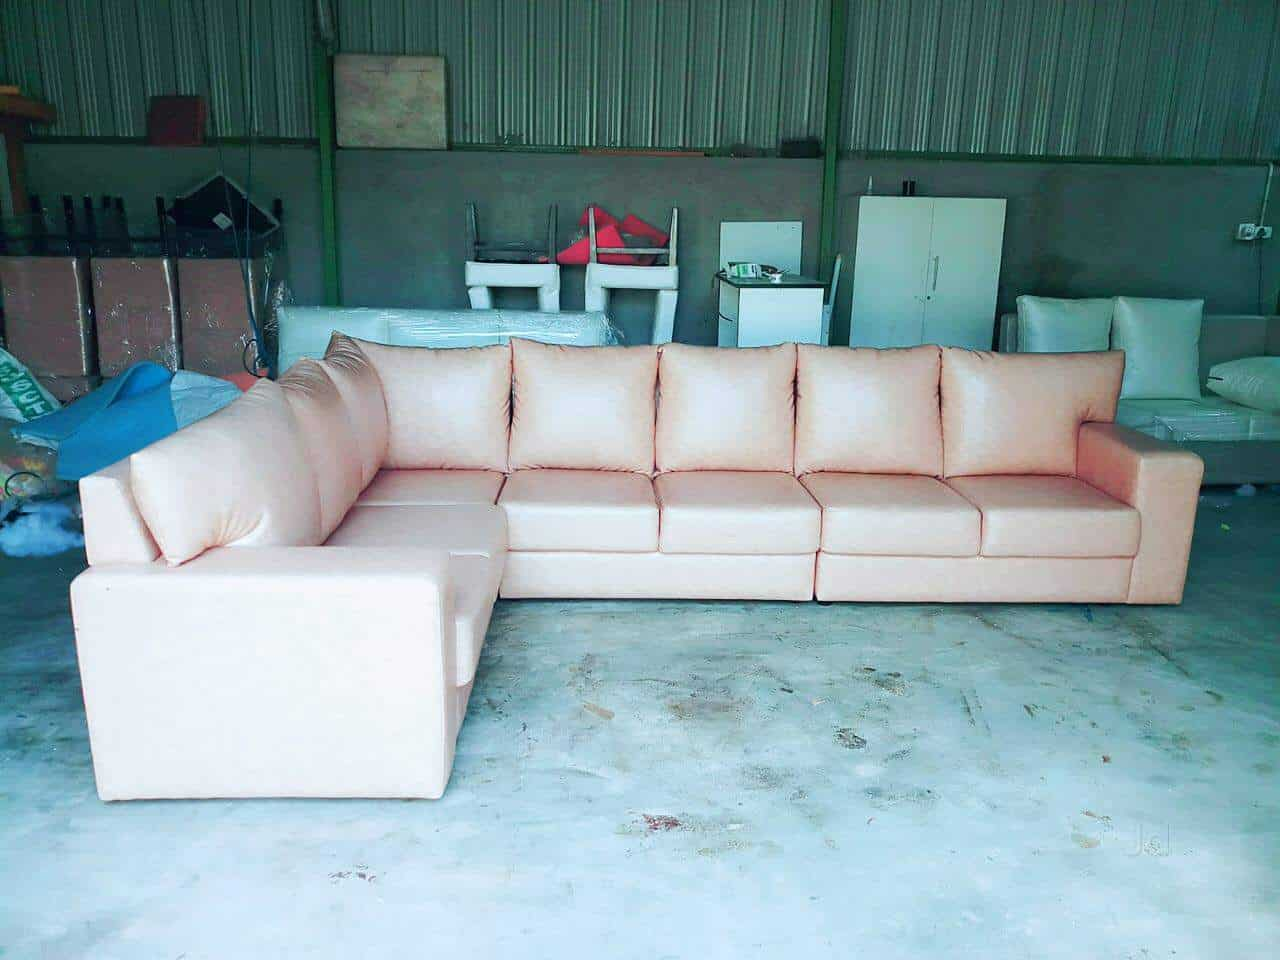 Recliner Sofa Repair Chennai M F Sofa Repair And Service Kilpauk Sofa Repair Services In